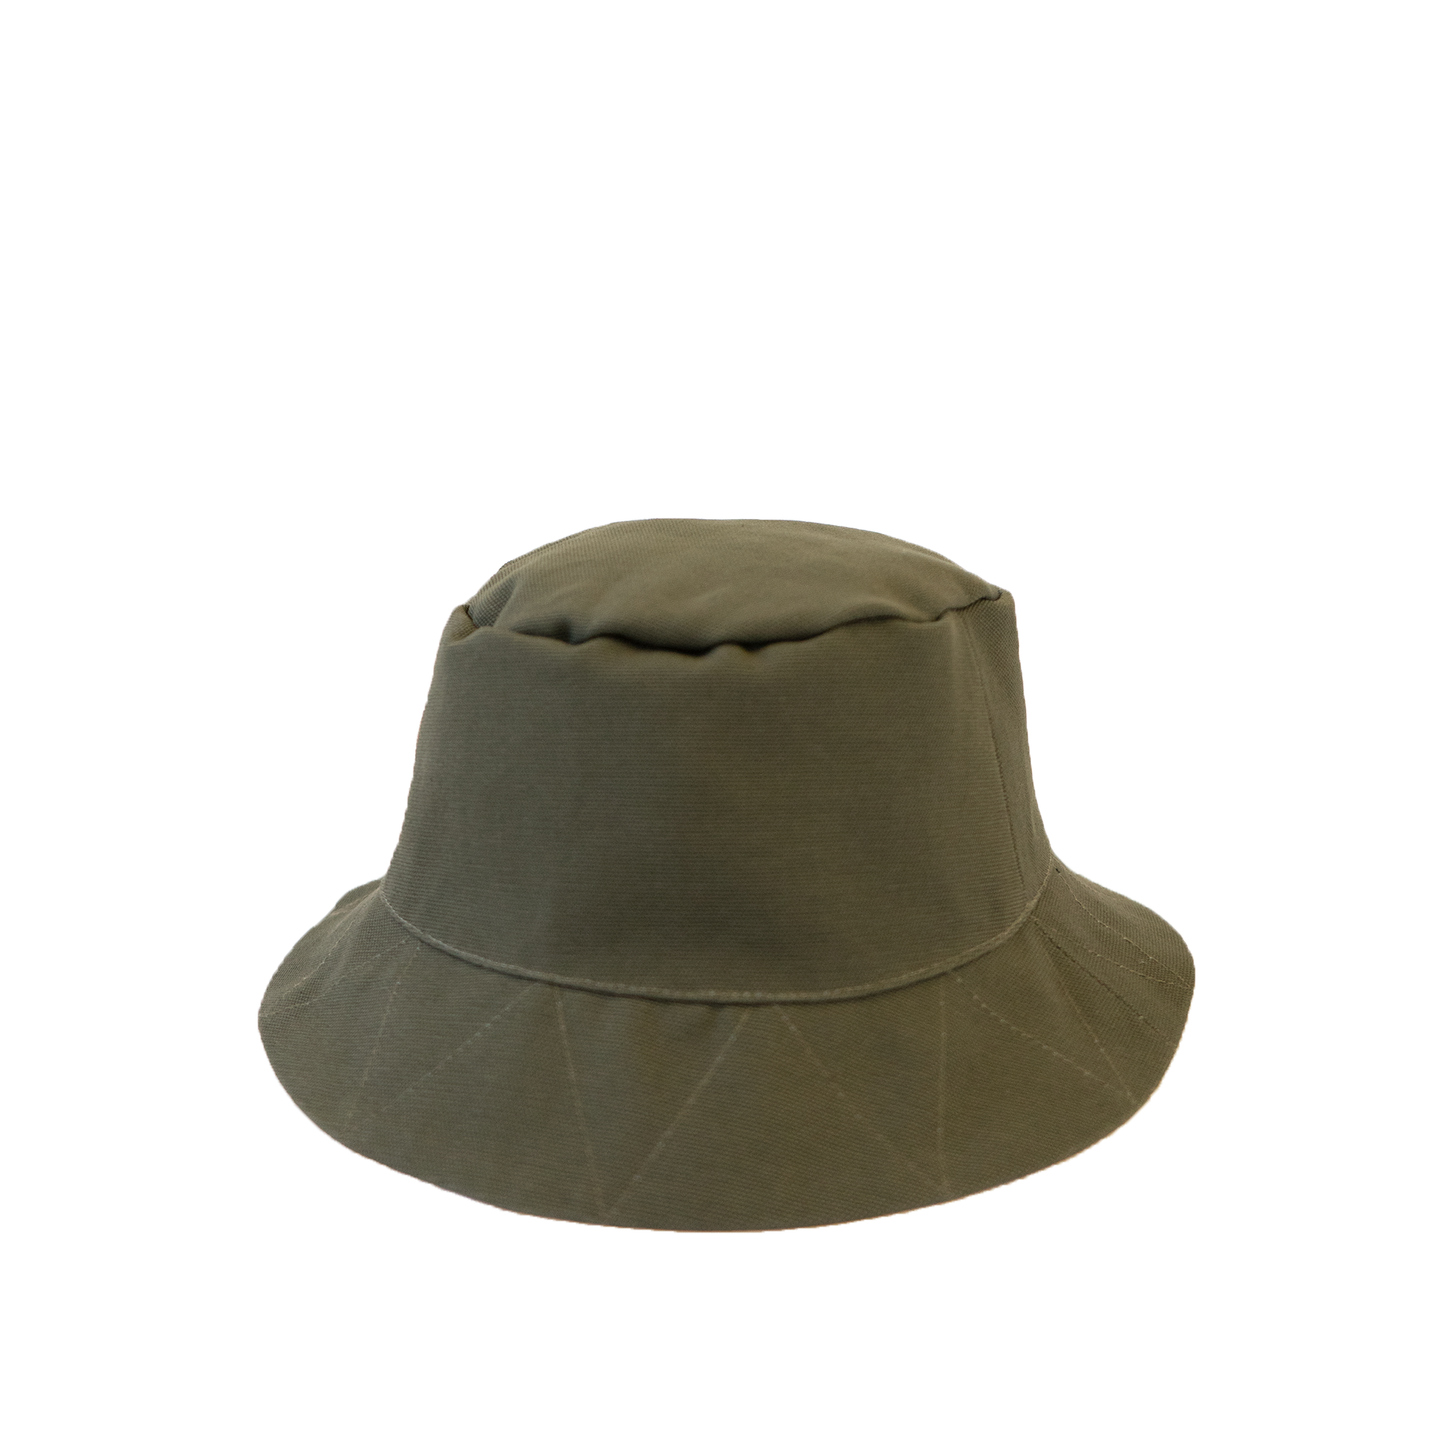 Reversible Bucket Hat - Green and Grey